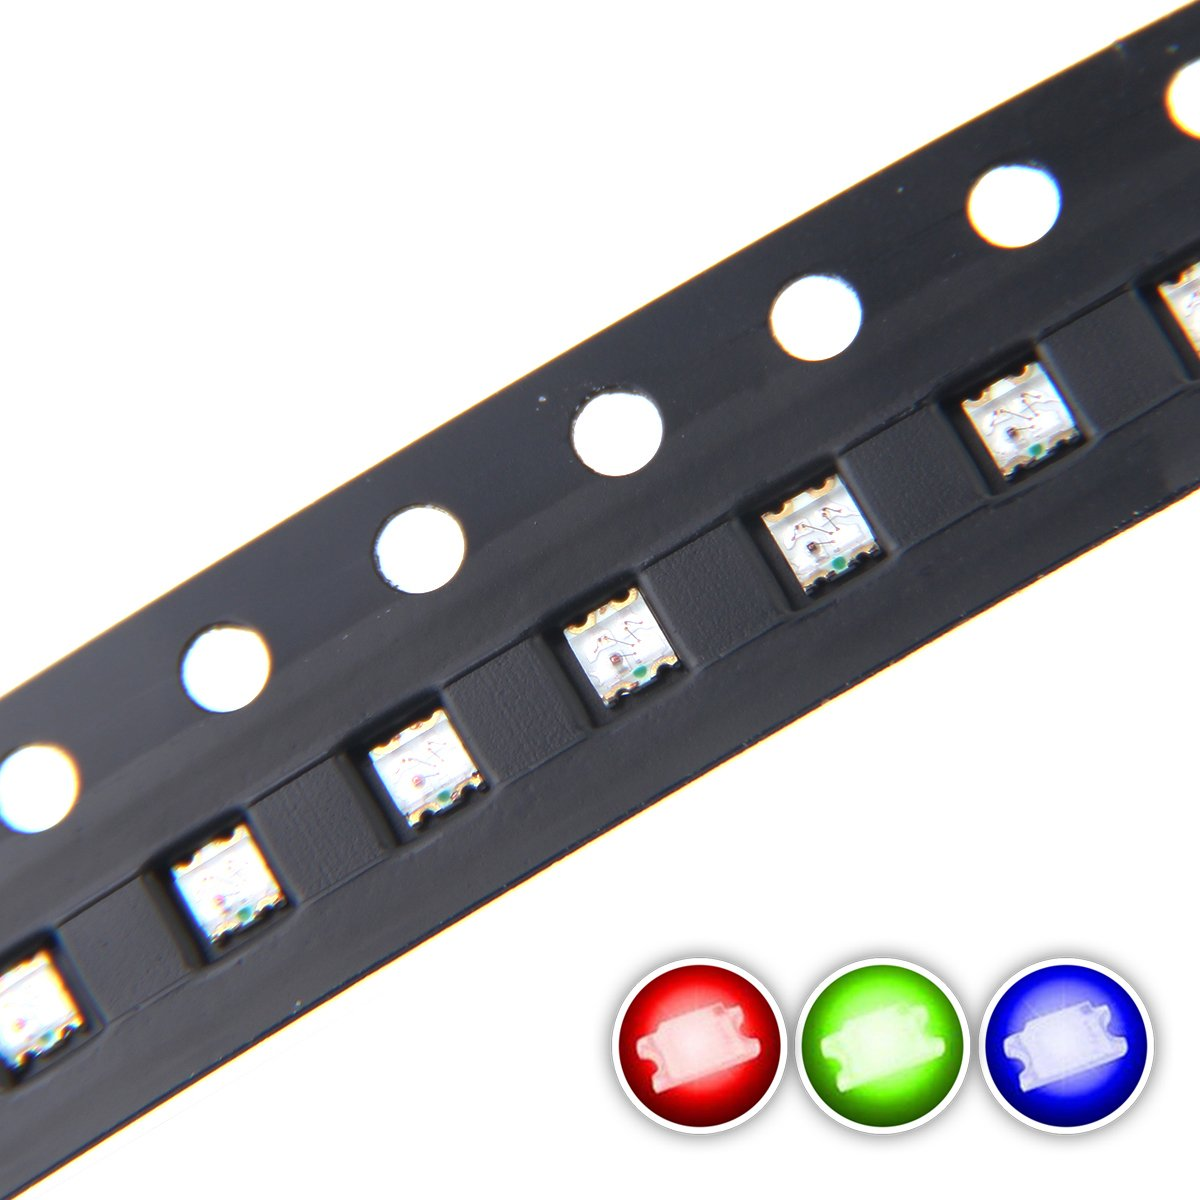 0603 SMD LED Diode Lights Chips Emitting White/Red/Green/Blue/Yellow/Purple/Pink